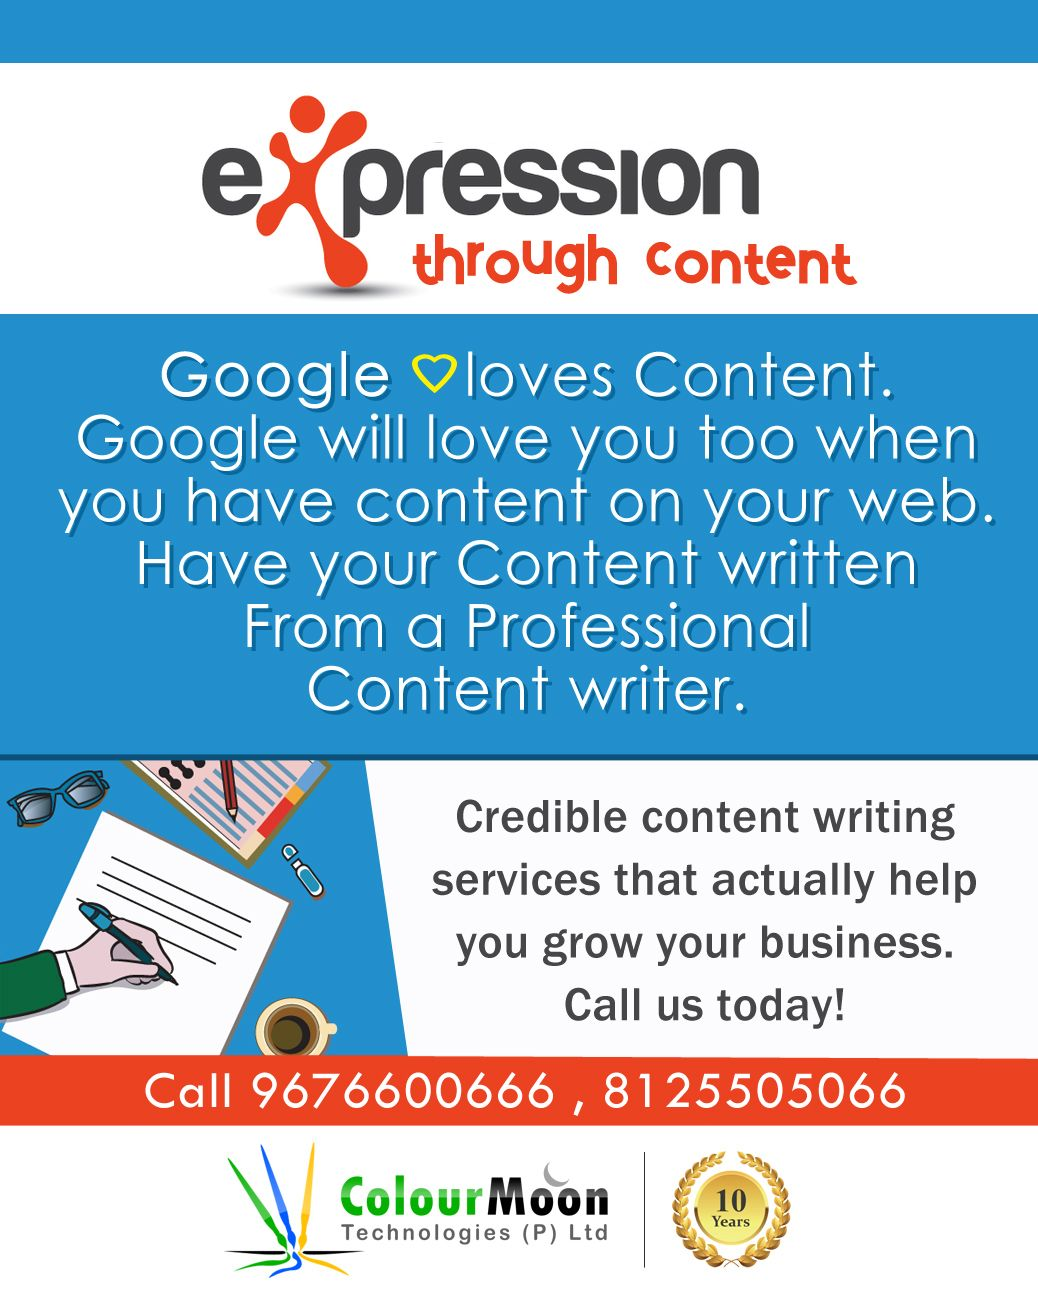 Web Contentwriting Service The Colour Moon Technologies Provide High Quality Affordable Web Content Writing Writing Services Content Writing App Development